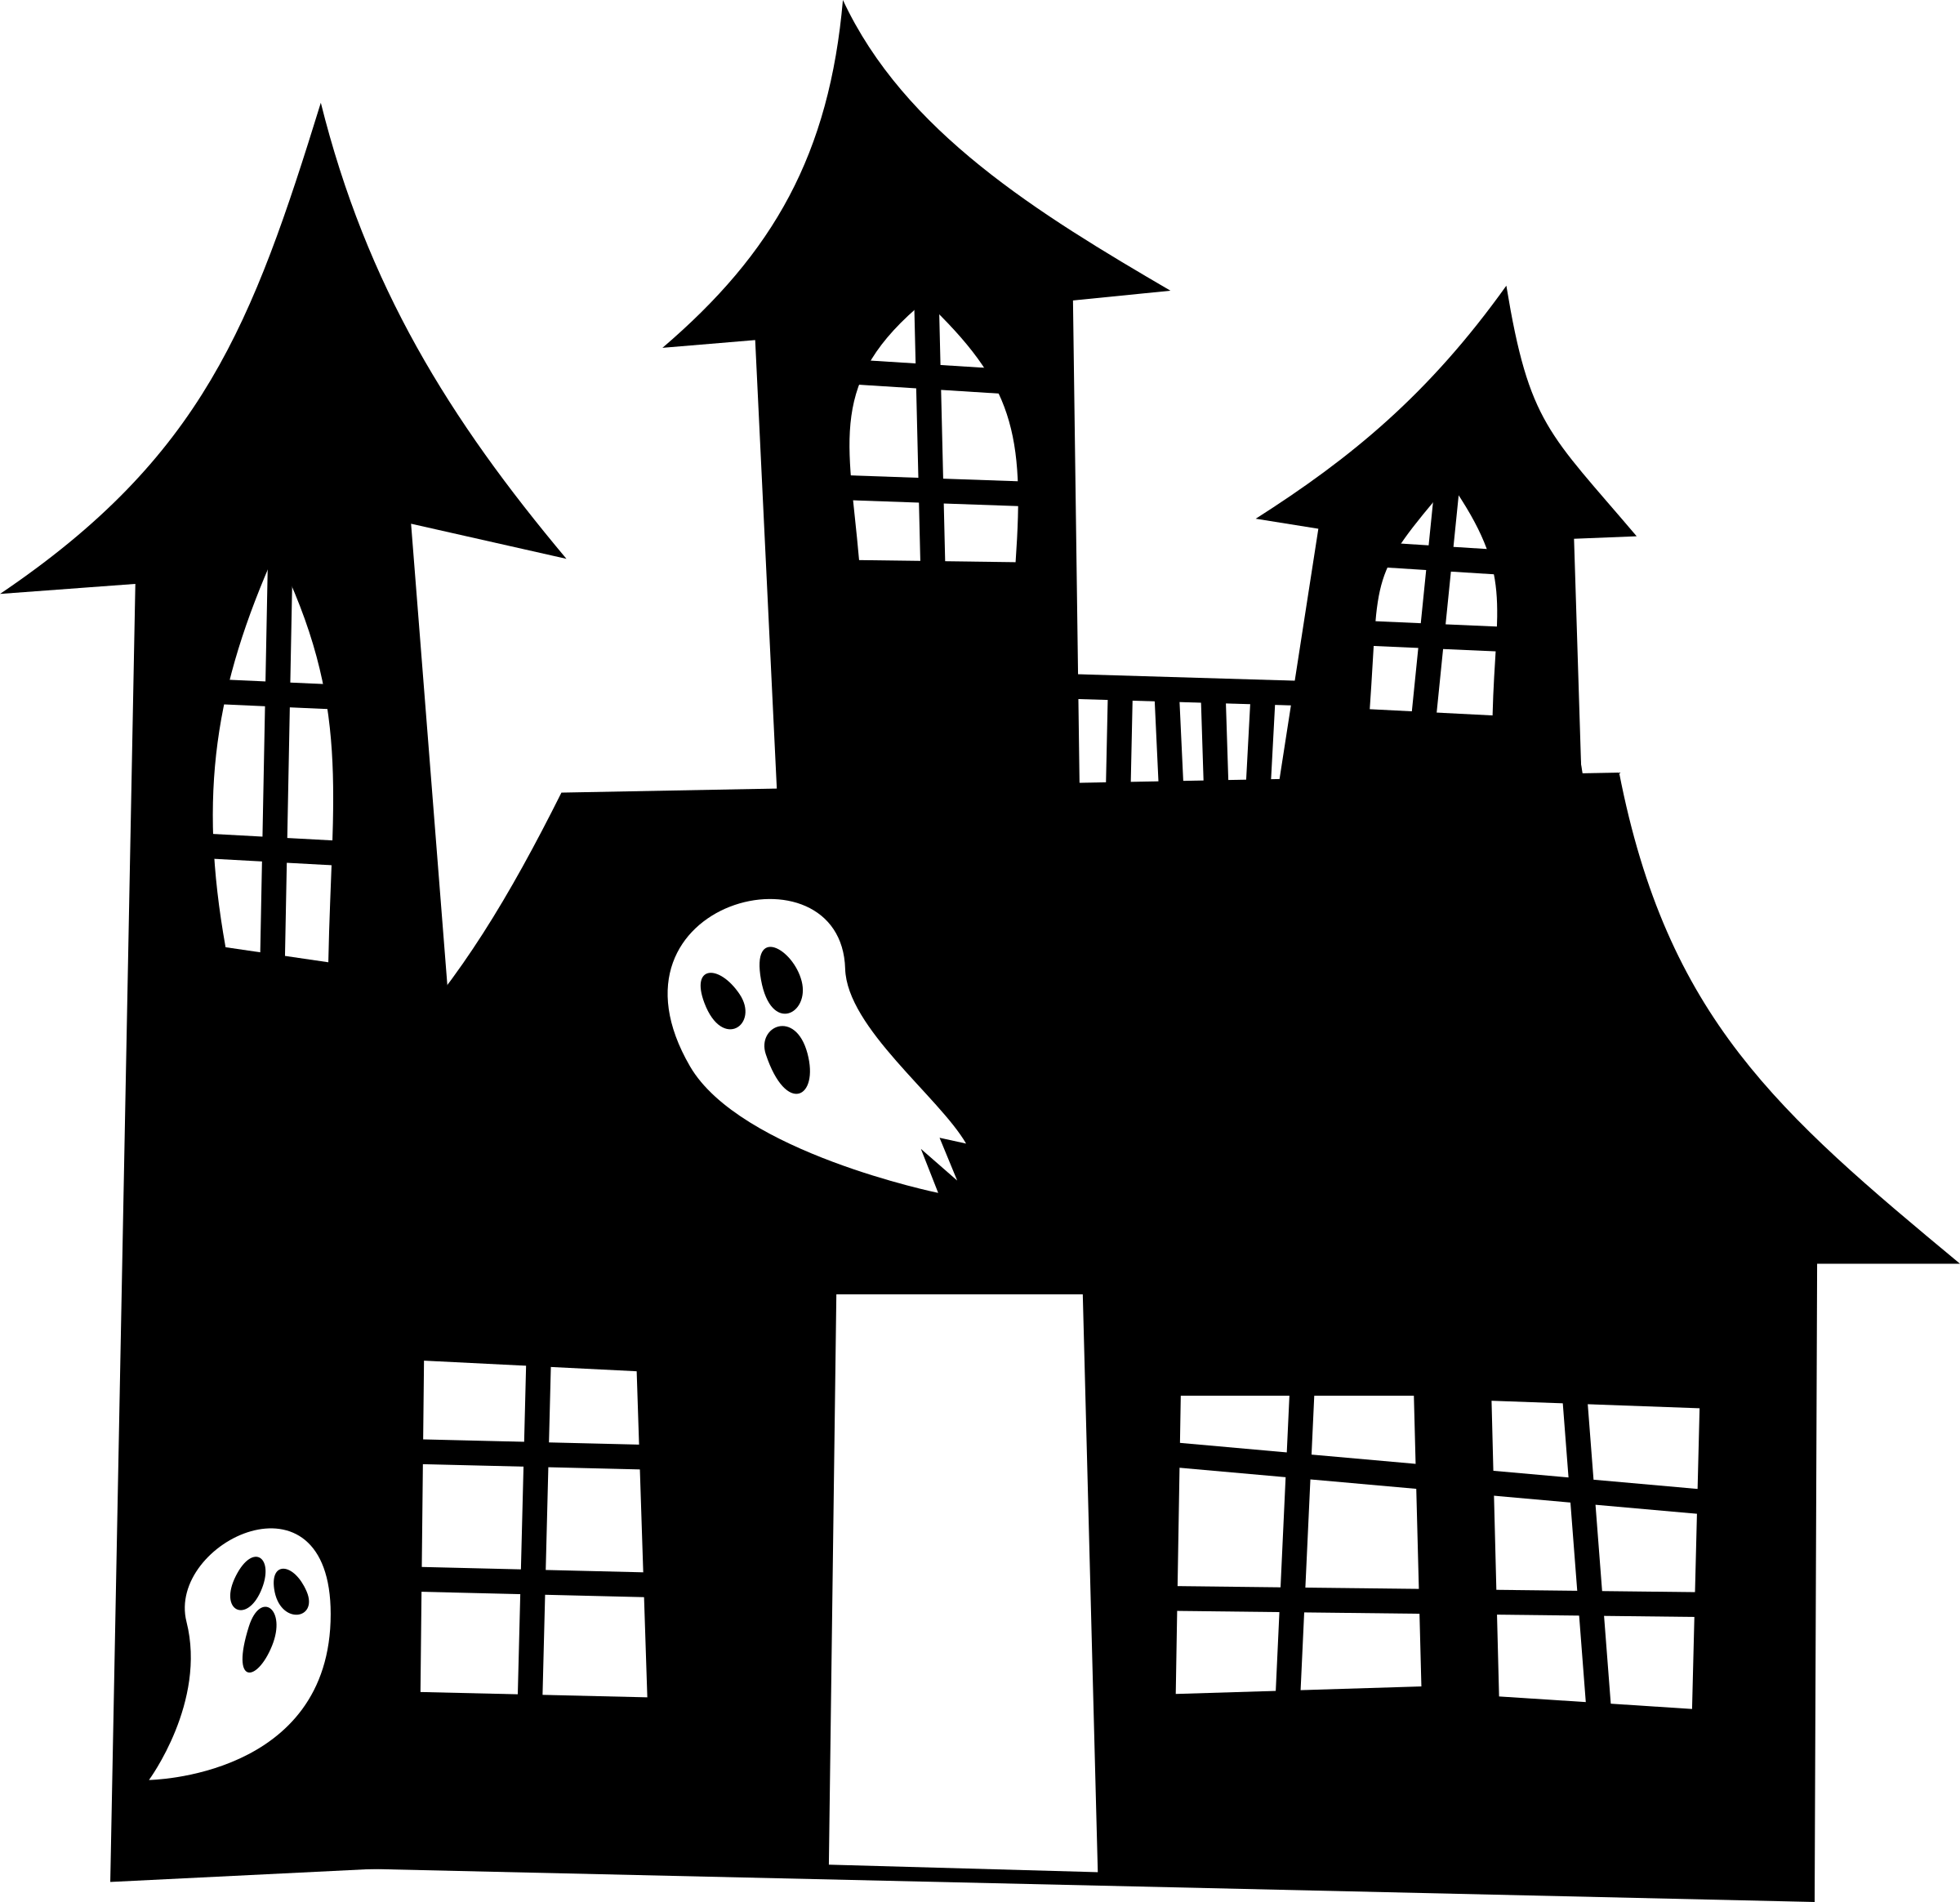 Black and white haunted house clipart jpg free Clipart - Haunted house silhouette jpg free